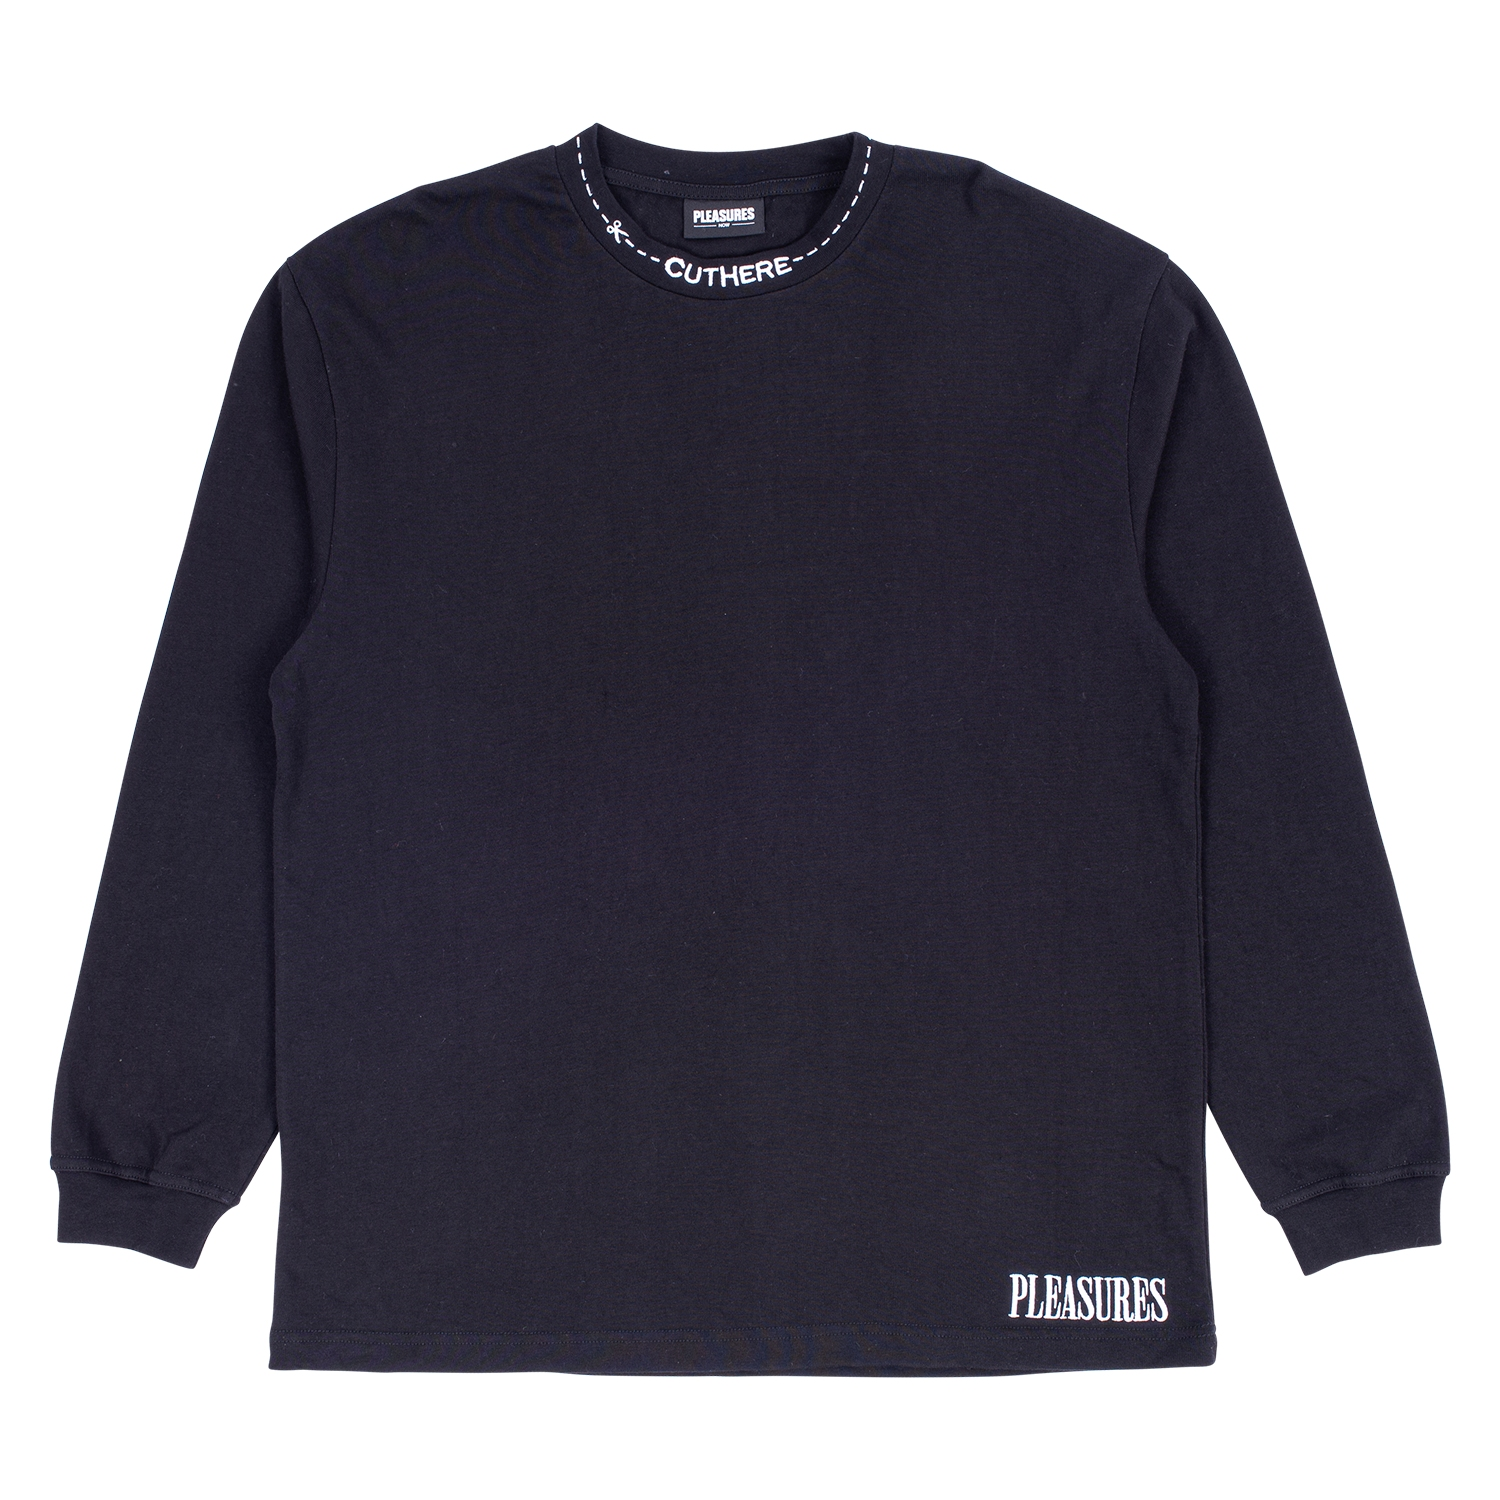 【PLEASURES/プレジャーズ】CUT HERE HEAVYWEIGHT L/S SHIRT カットソー / BLACK